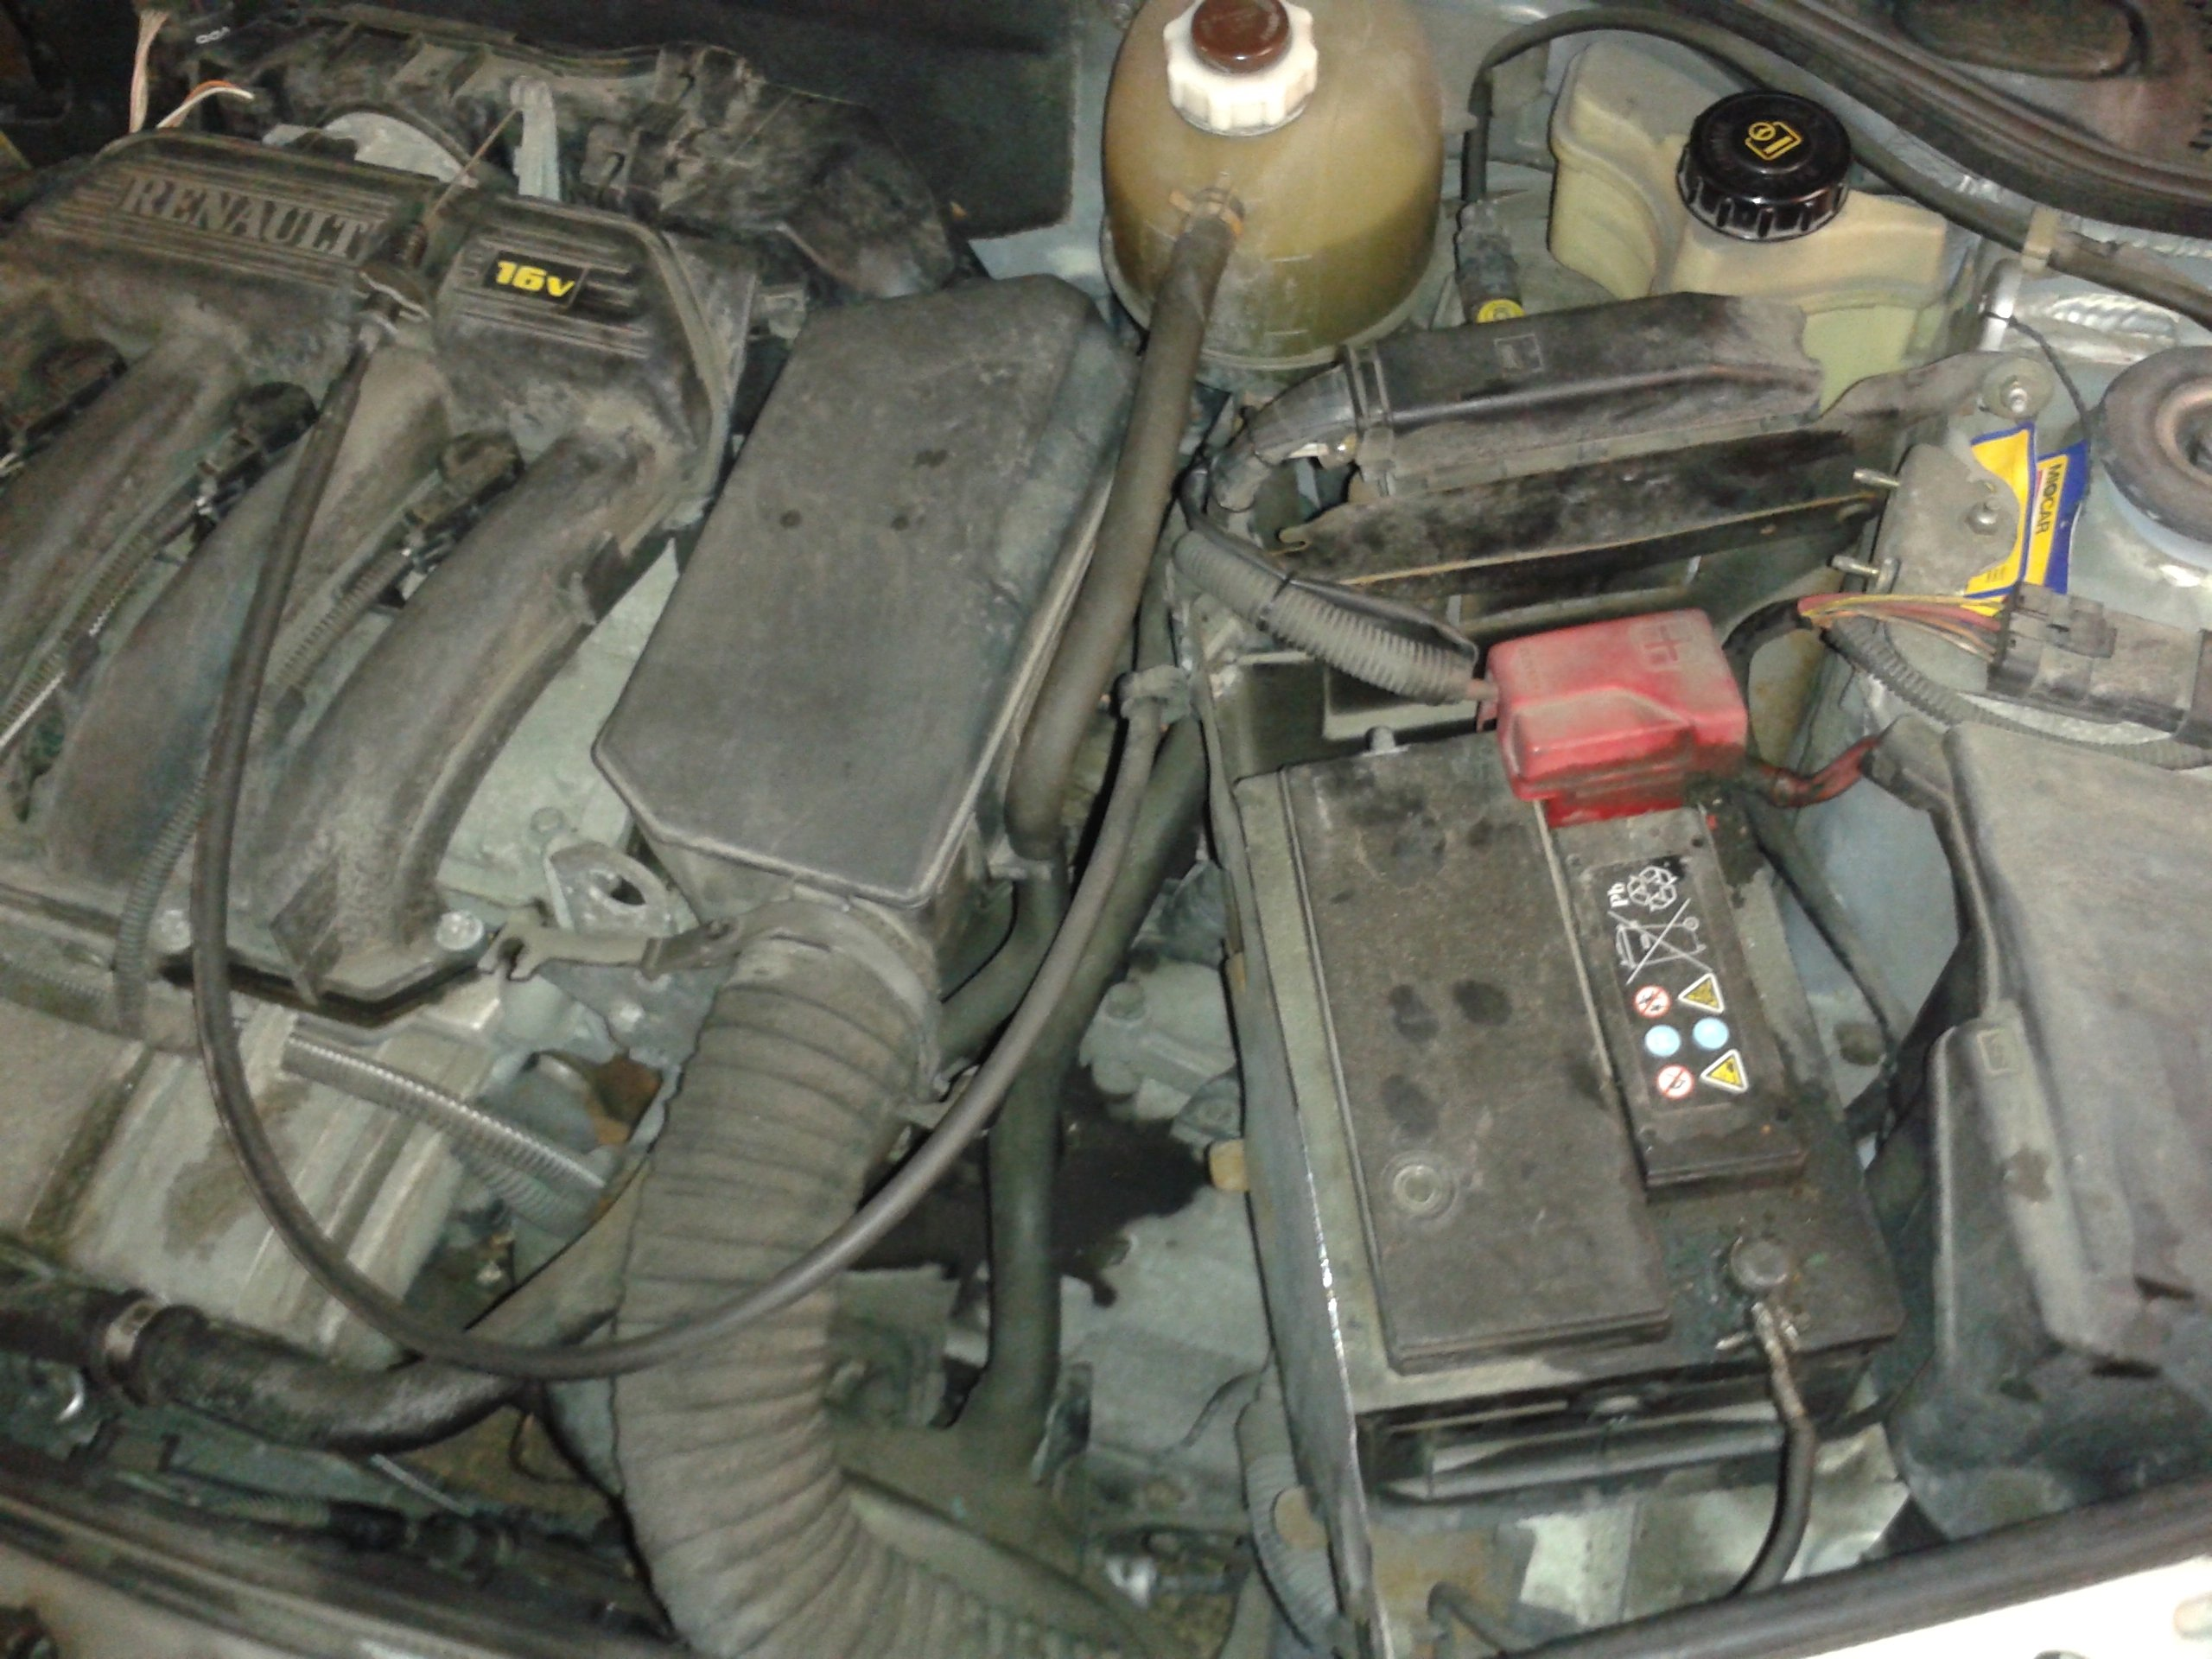 1998-2012 Renault Clio II Battery Replacement (1998, 1999, 2000